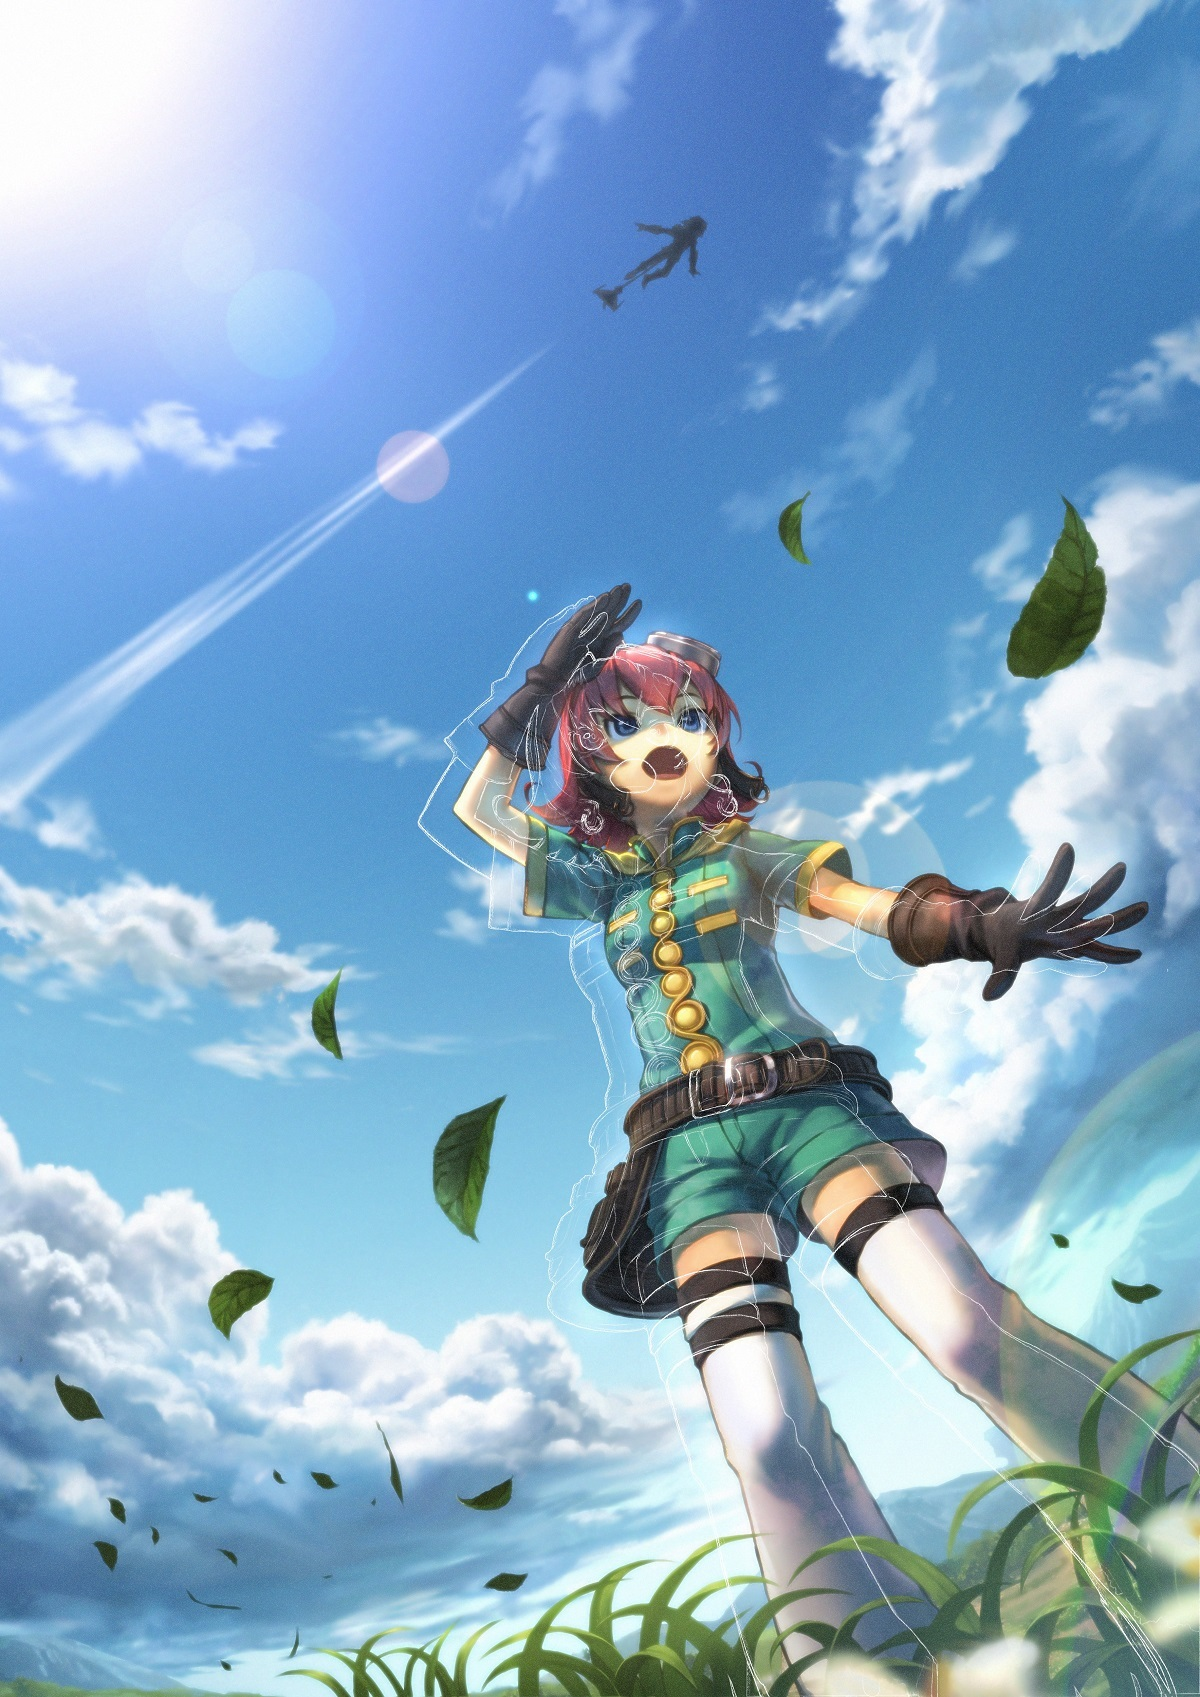 Here's The Awesome New Rodea The Sky Solider Trailer For Nintendo 3DS And WiiU